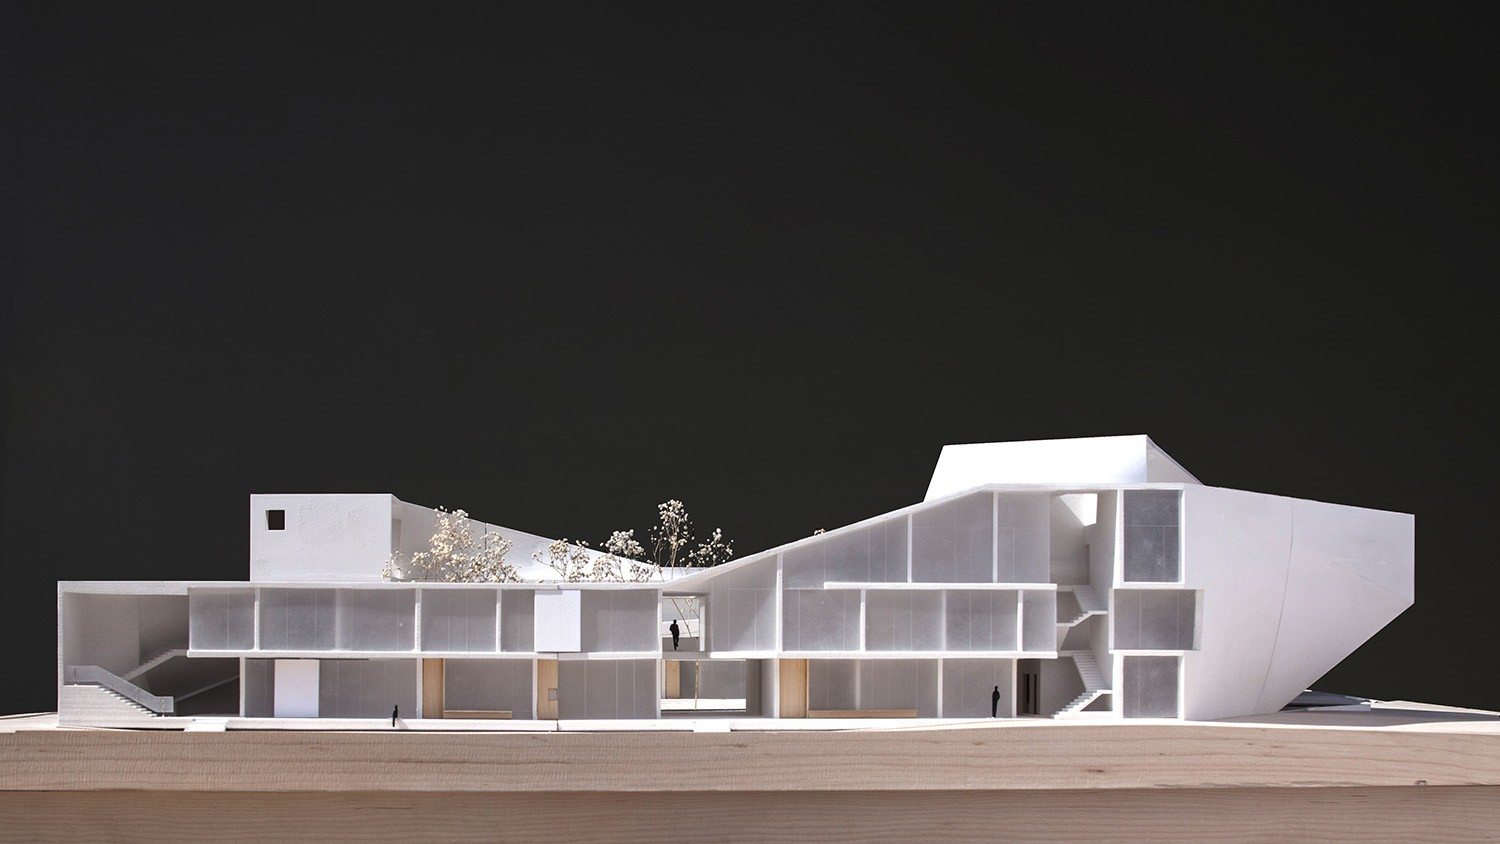 https://s3.us-east-2.amazonaws.com/steven-holl/uploads/projects/project-images/StevenHollArchitects_Bogota_IMG_6171-edit_WH.jpg